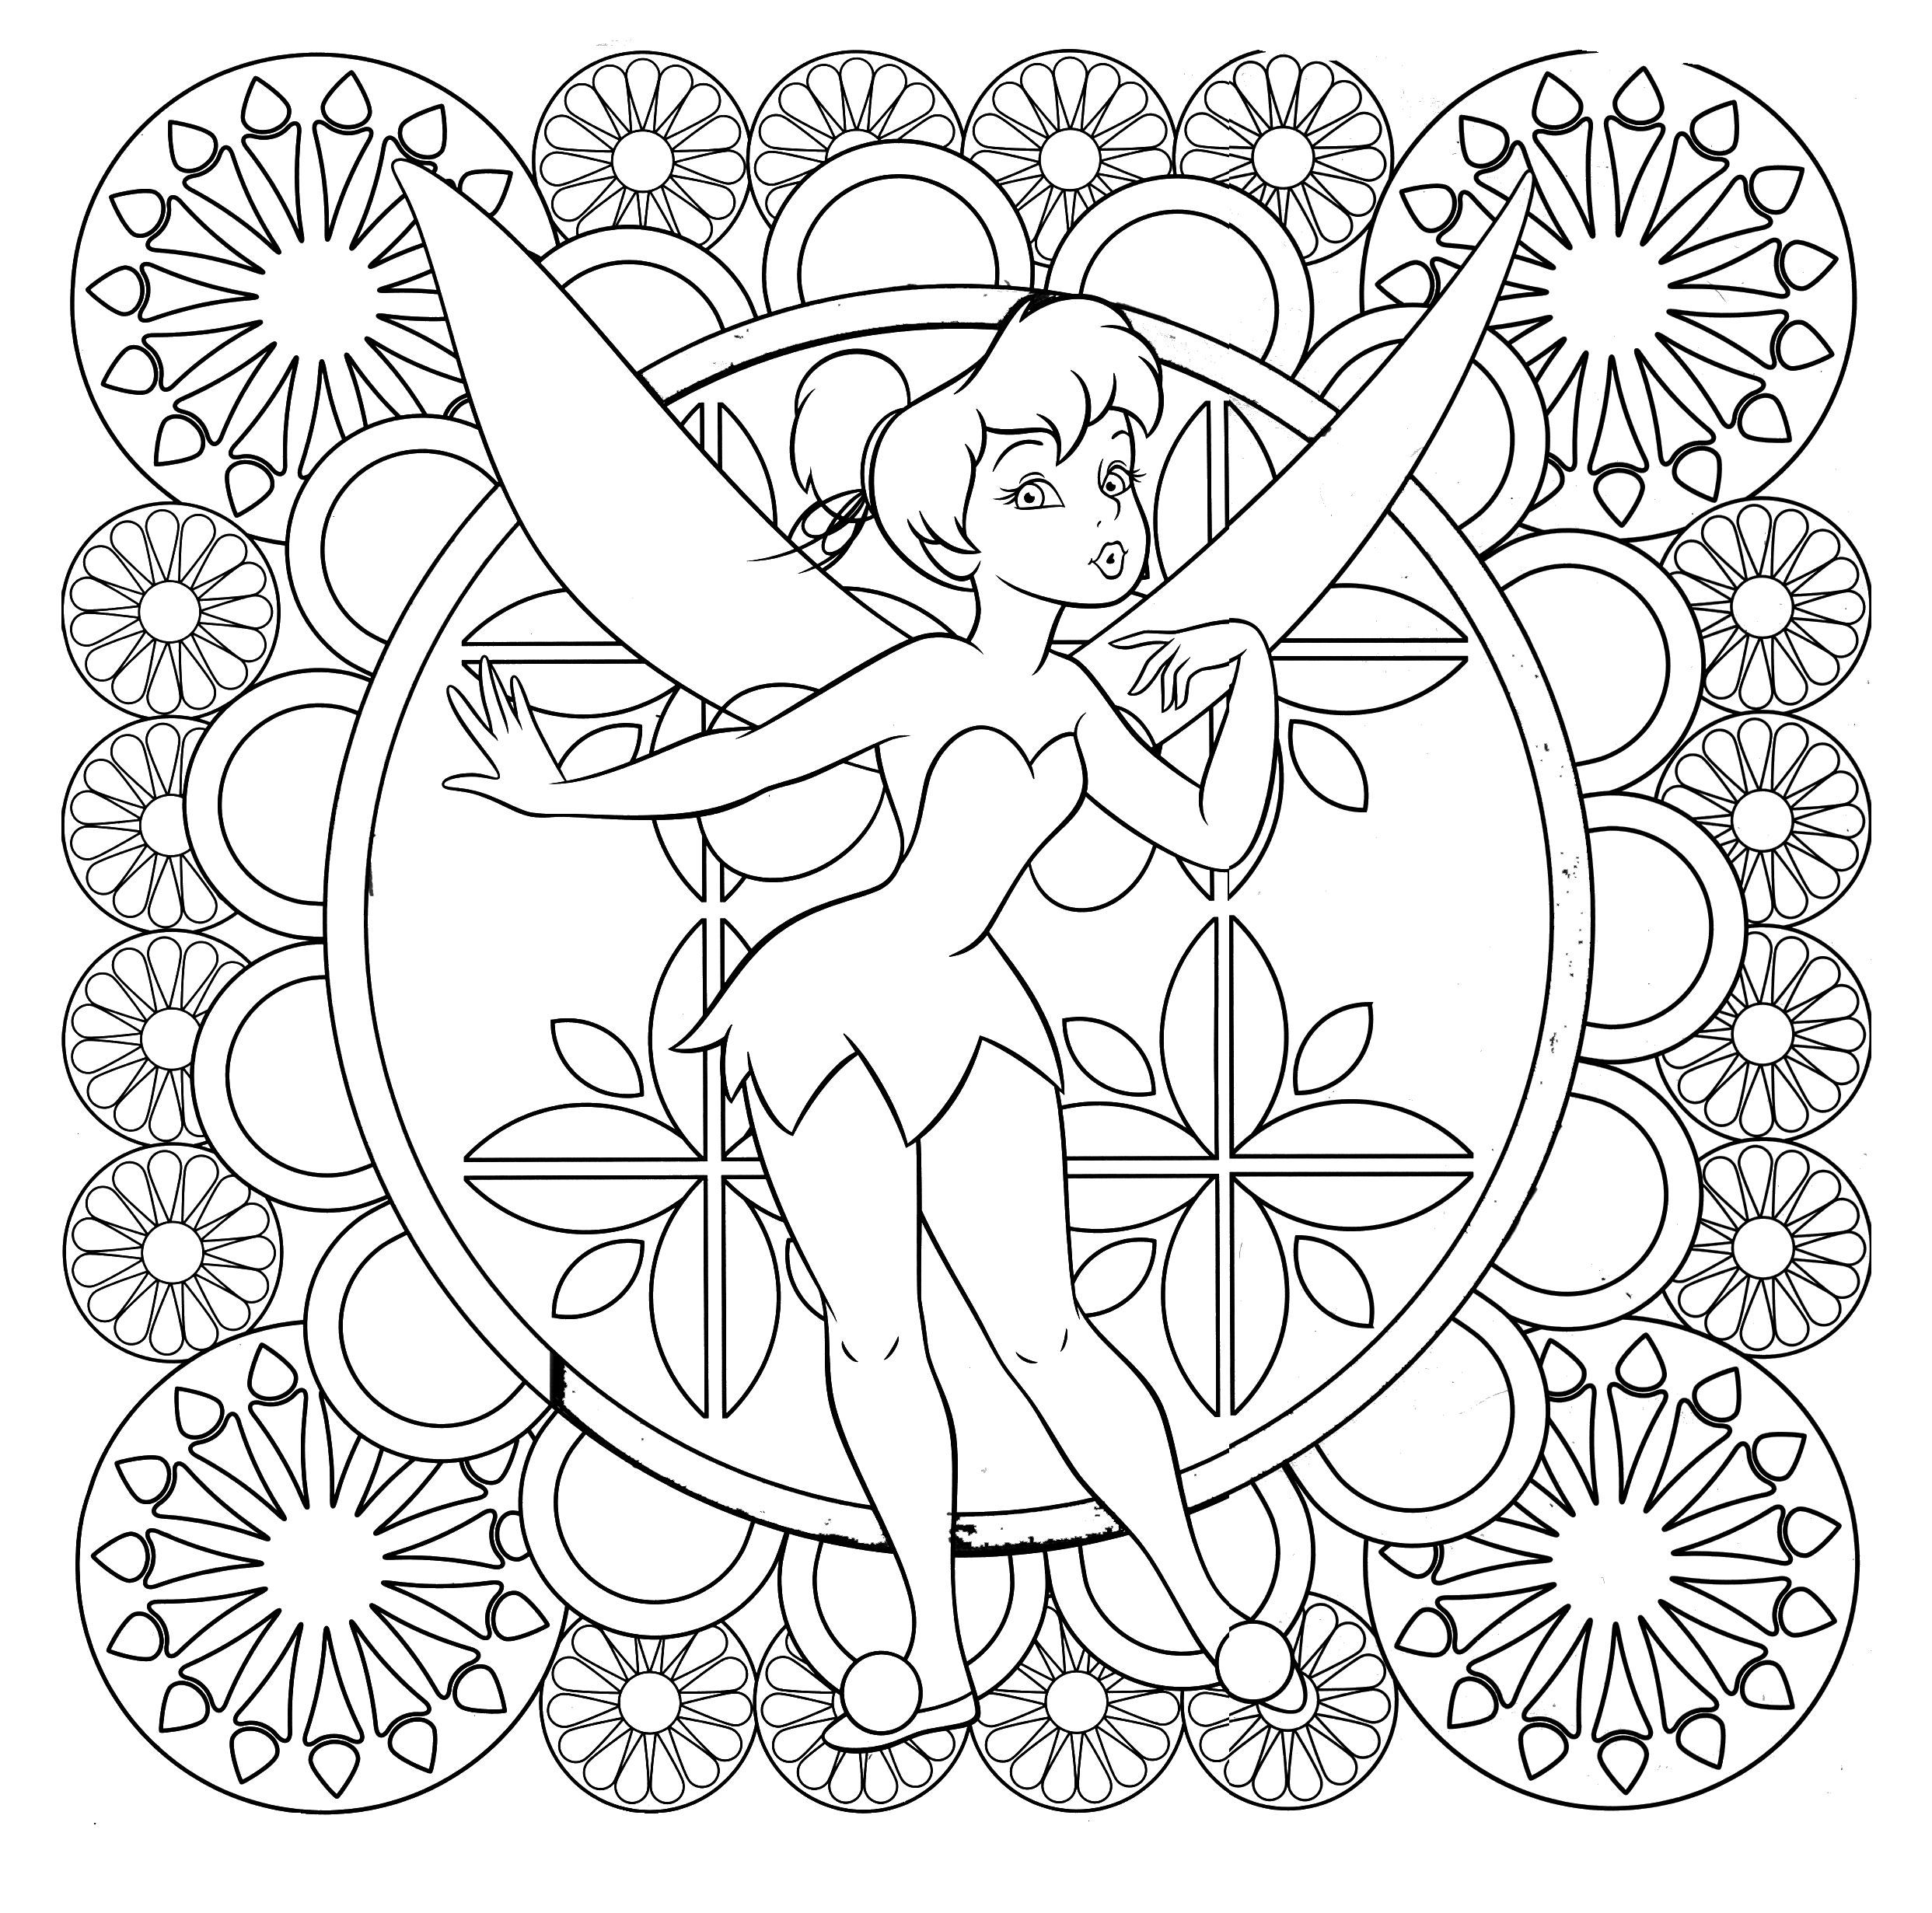 Tinkerbell Difficult Coloring Page Malvorlagen Pinterest